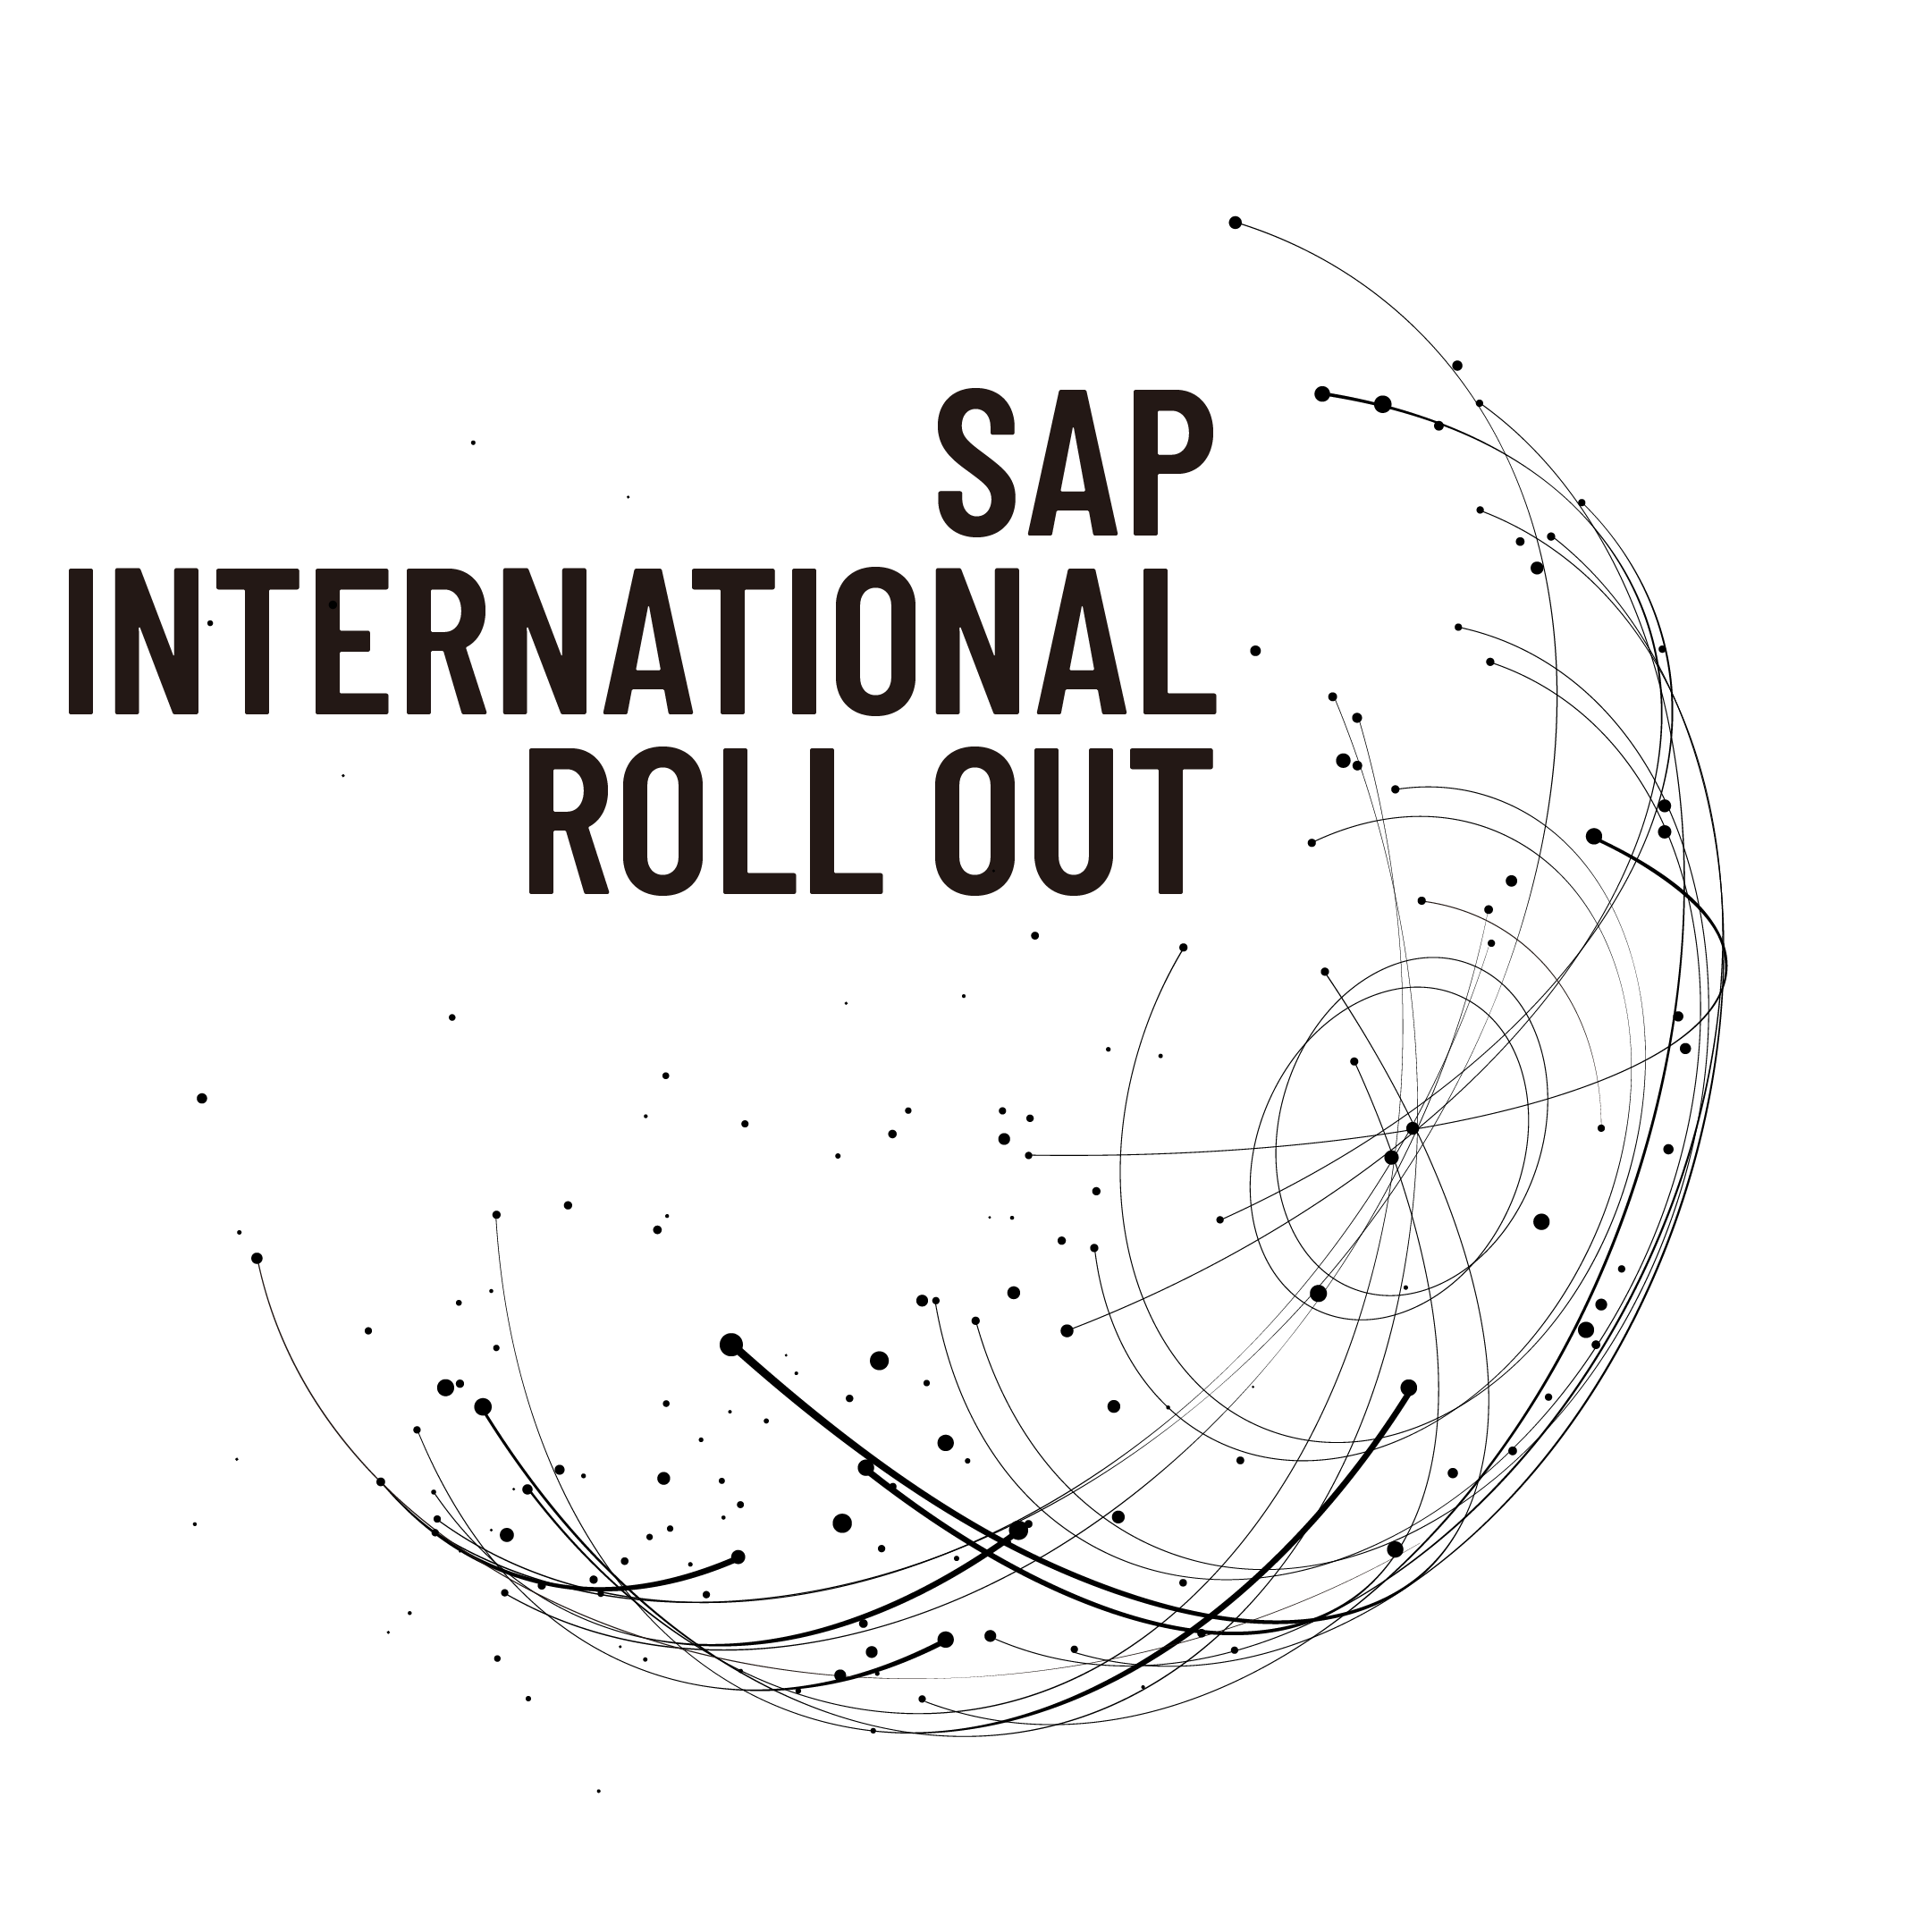 sap roll out